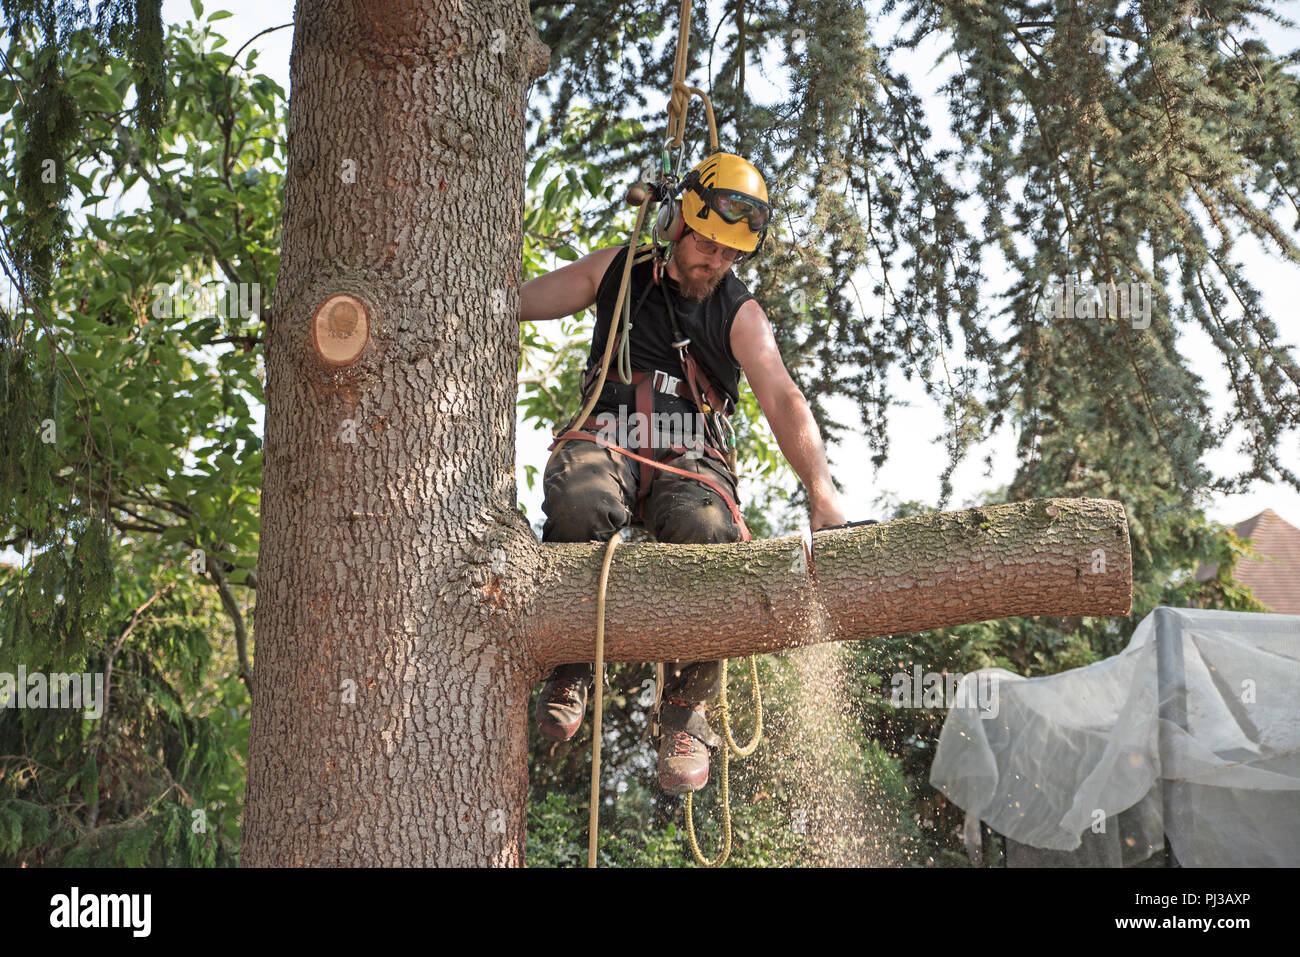 Arborist at work cutting a tree branch using a chainsaw. - Stock Image